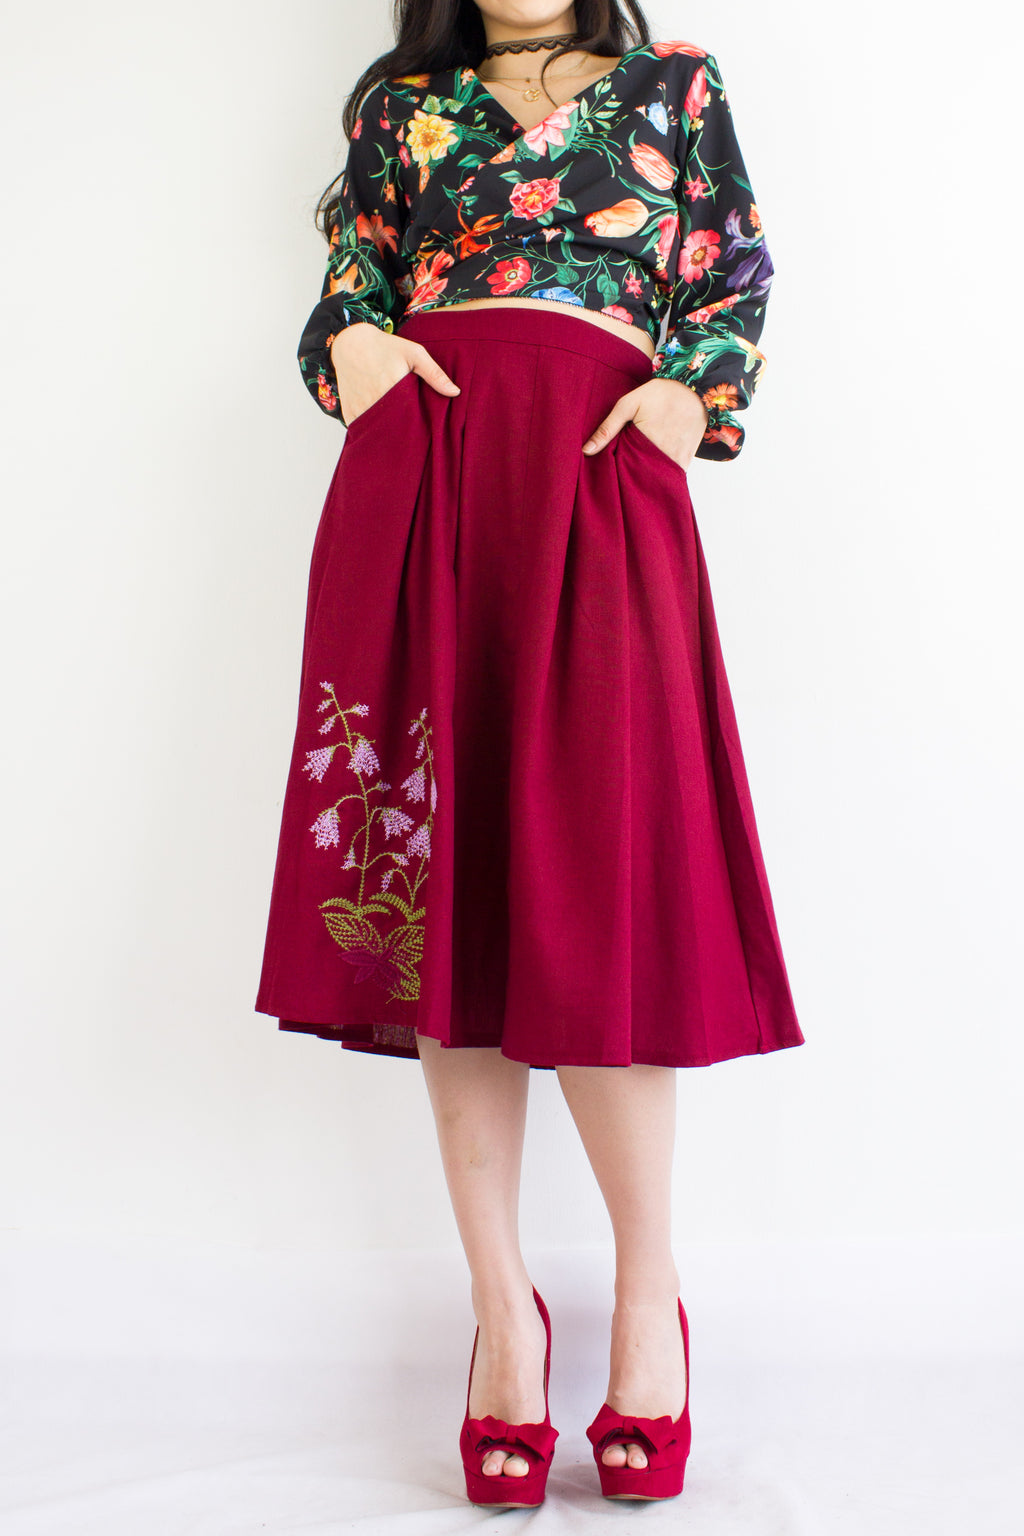 BaiHe Embroidered Linen Skirt in Wine Red - BOTTOMS - Peep Boutique